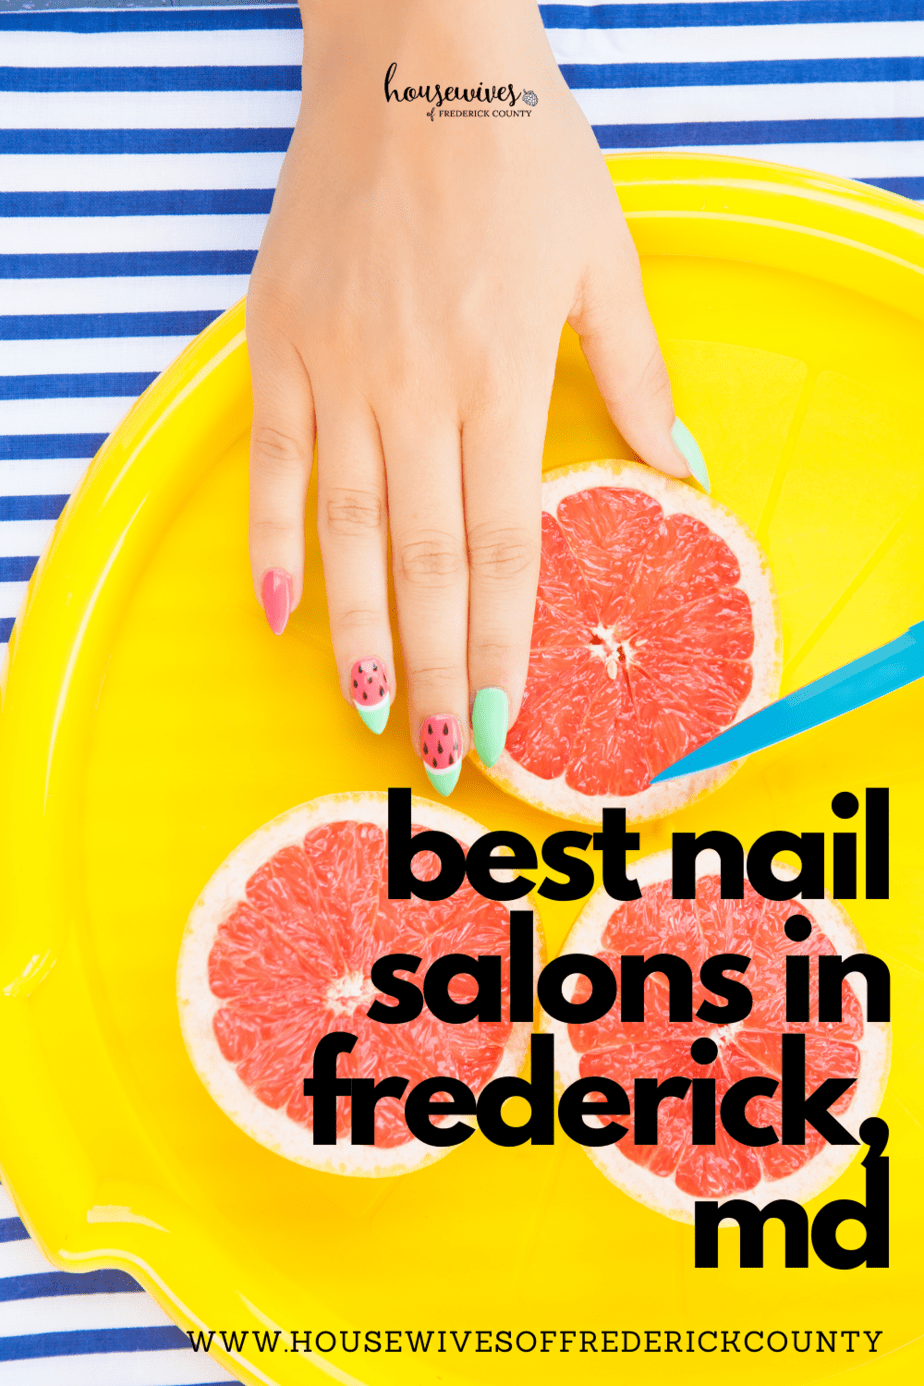 2021 Best Nail Salons in Frederick Md: Hands Down